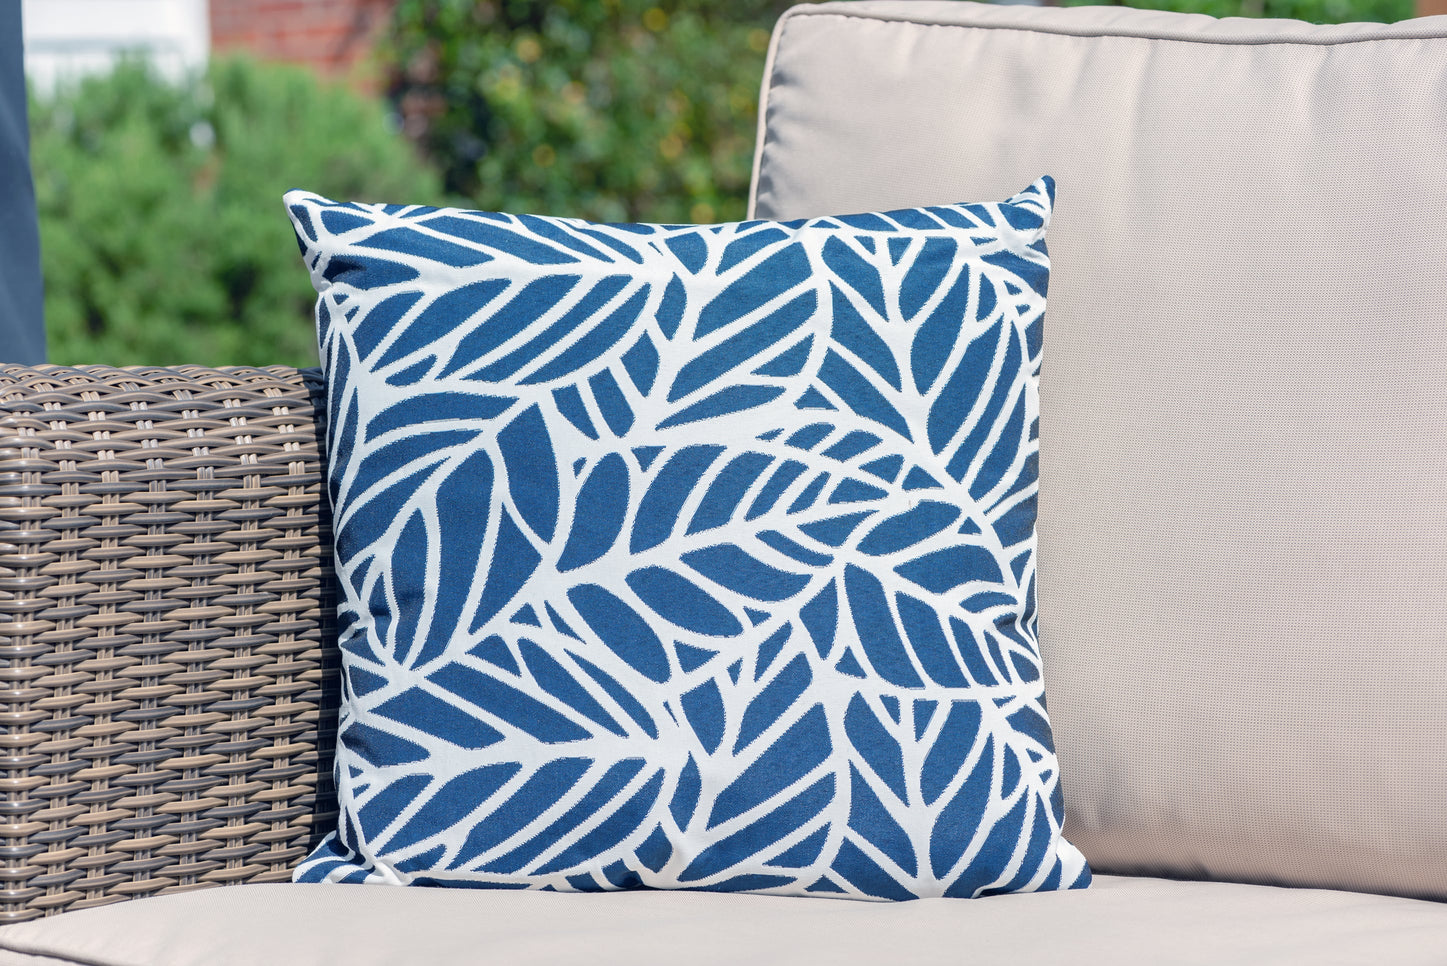 Luxury Cushion in Palm Navy Bean Bag Cushion armadillosun